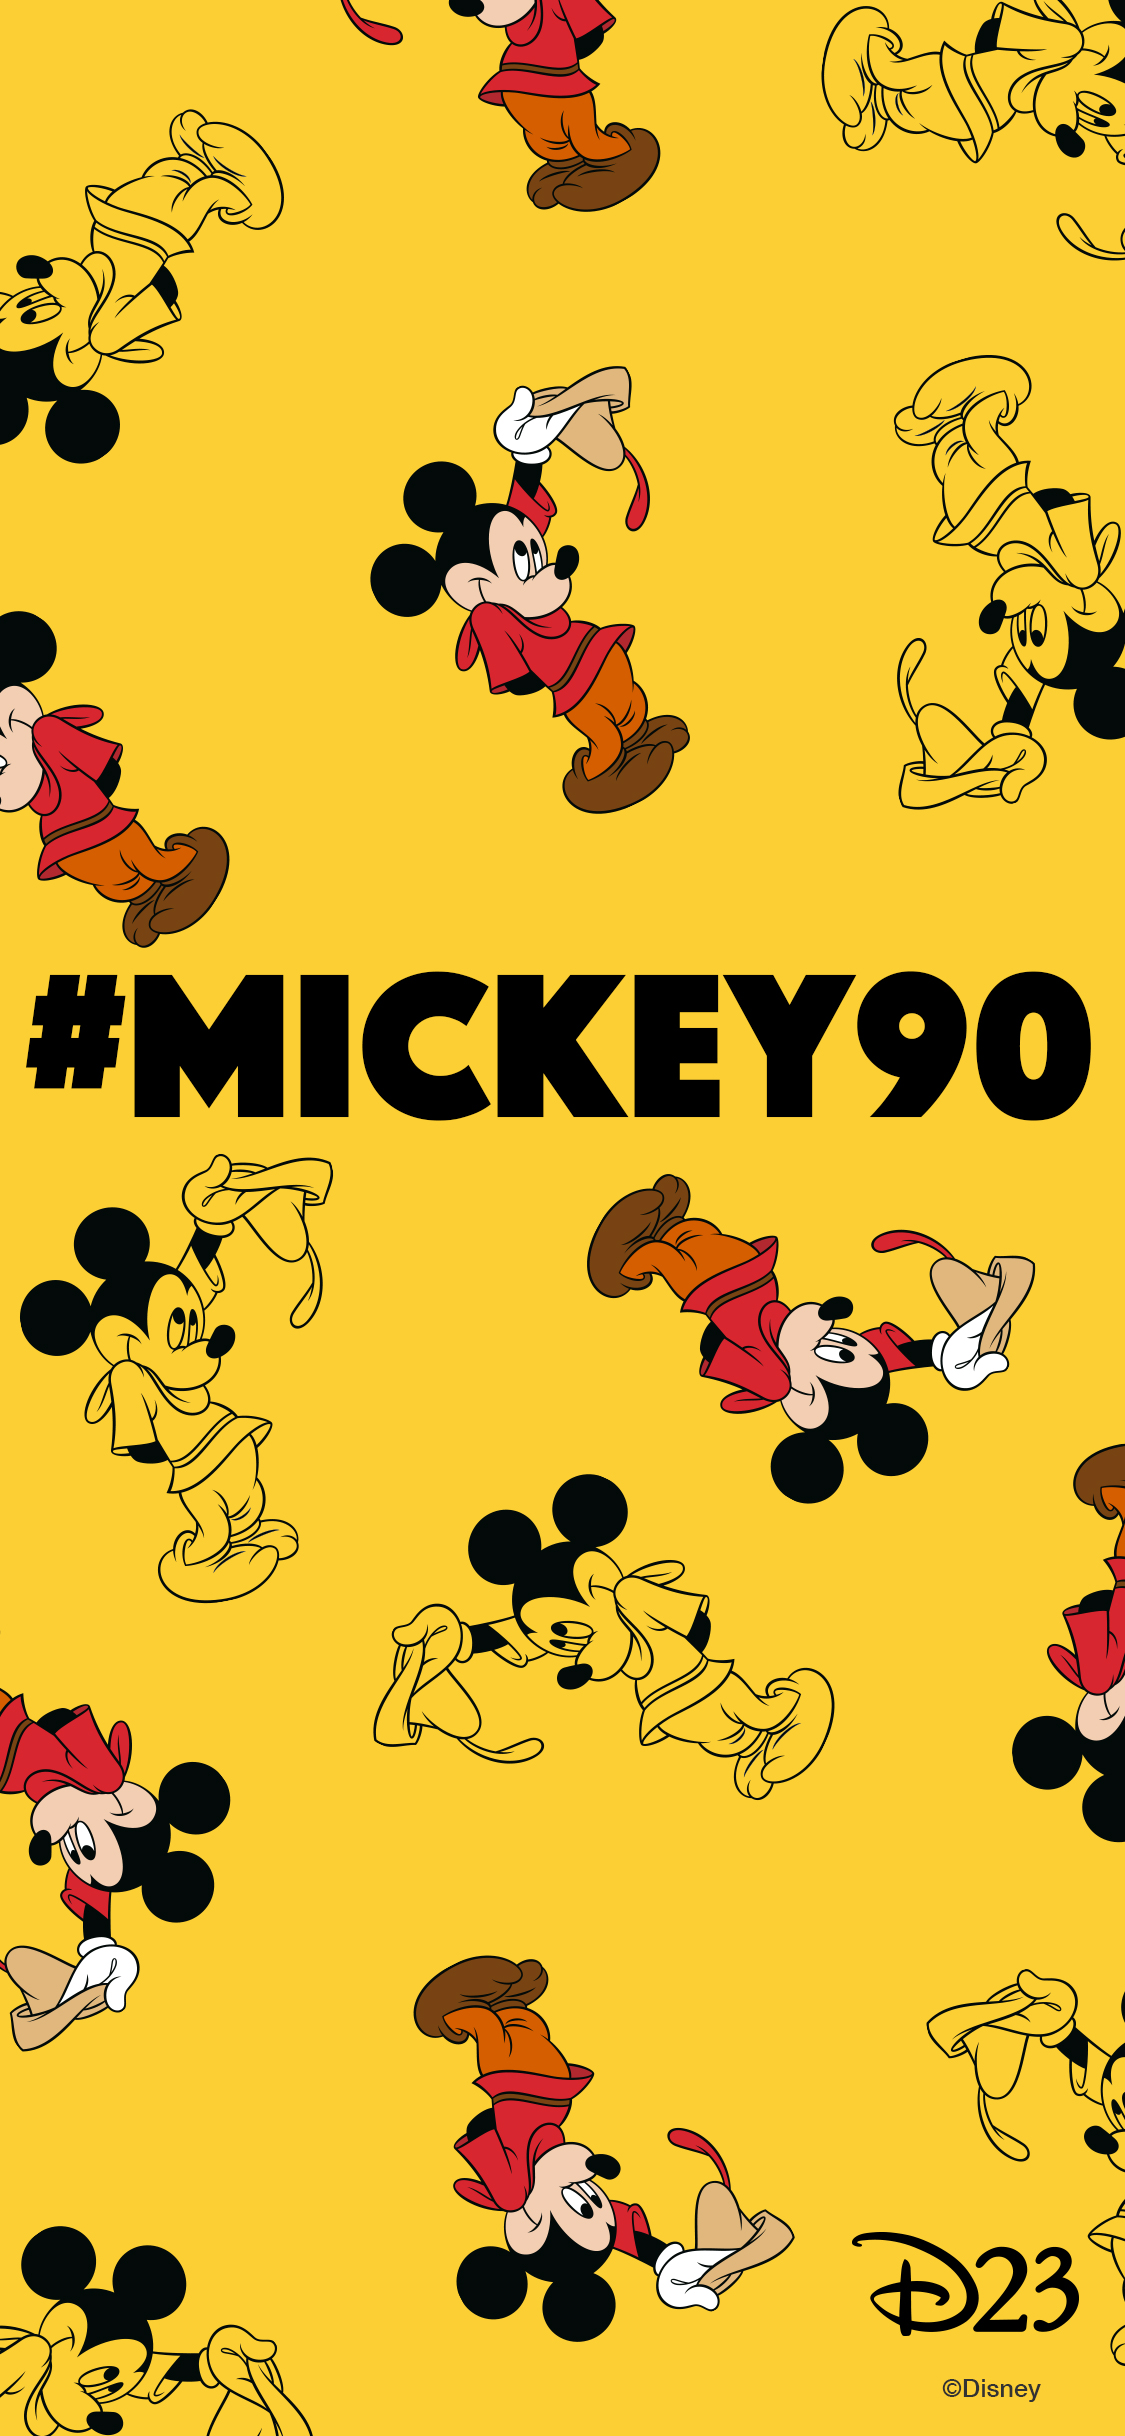 6 Mickey Mouse Phone Wallpapers to Make Your Phone a Mouse-terpiece - D23